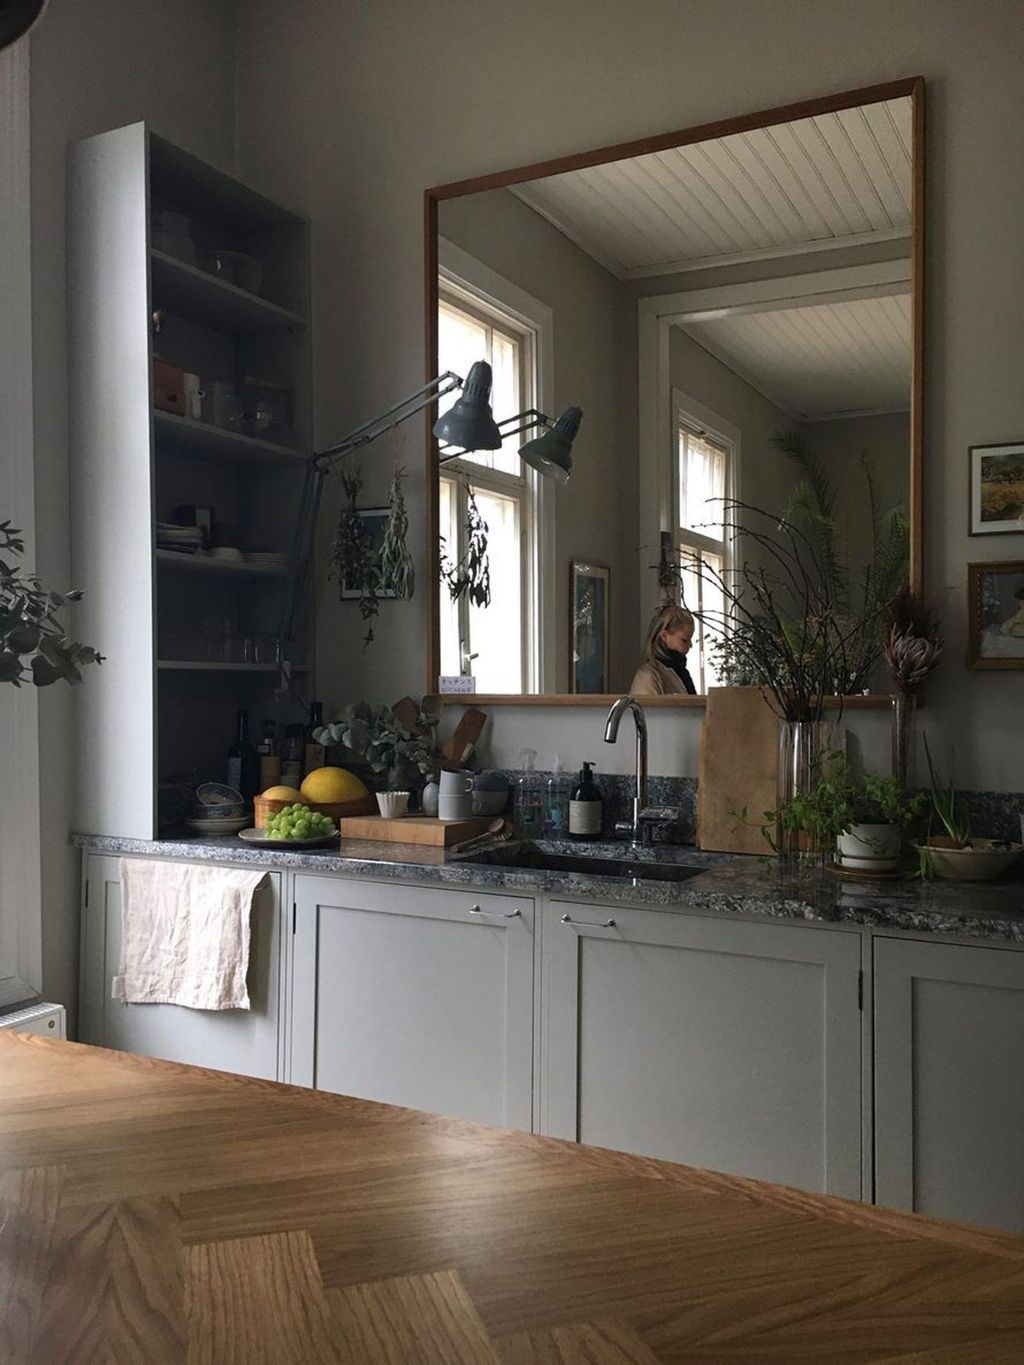 44 The Best Kitchen Mirror Ideas For Remodeling Your Kitchen